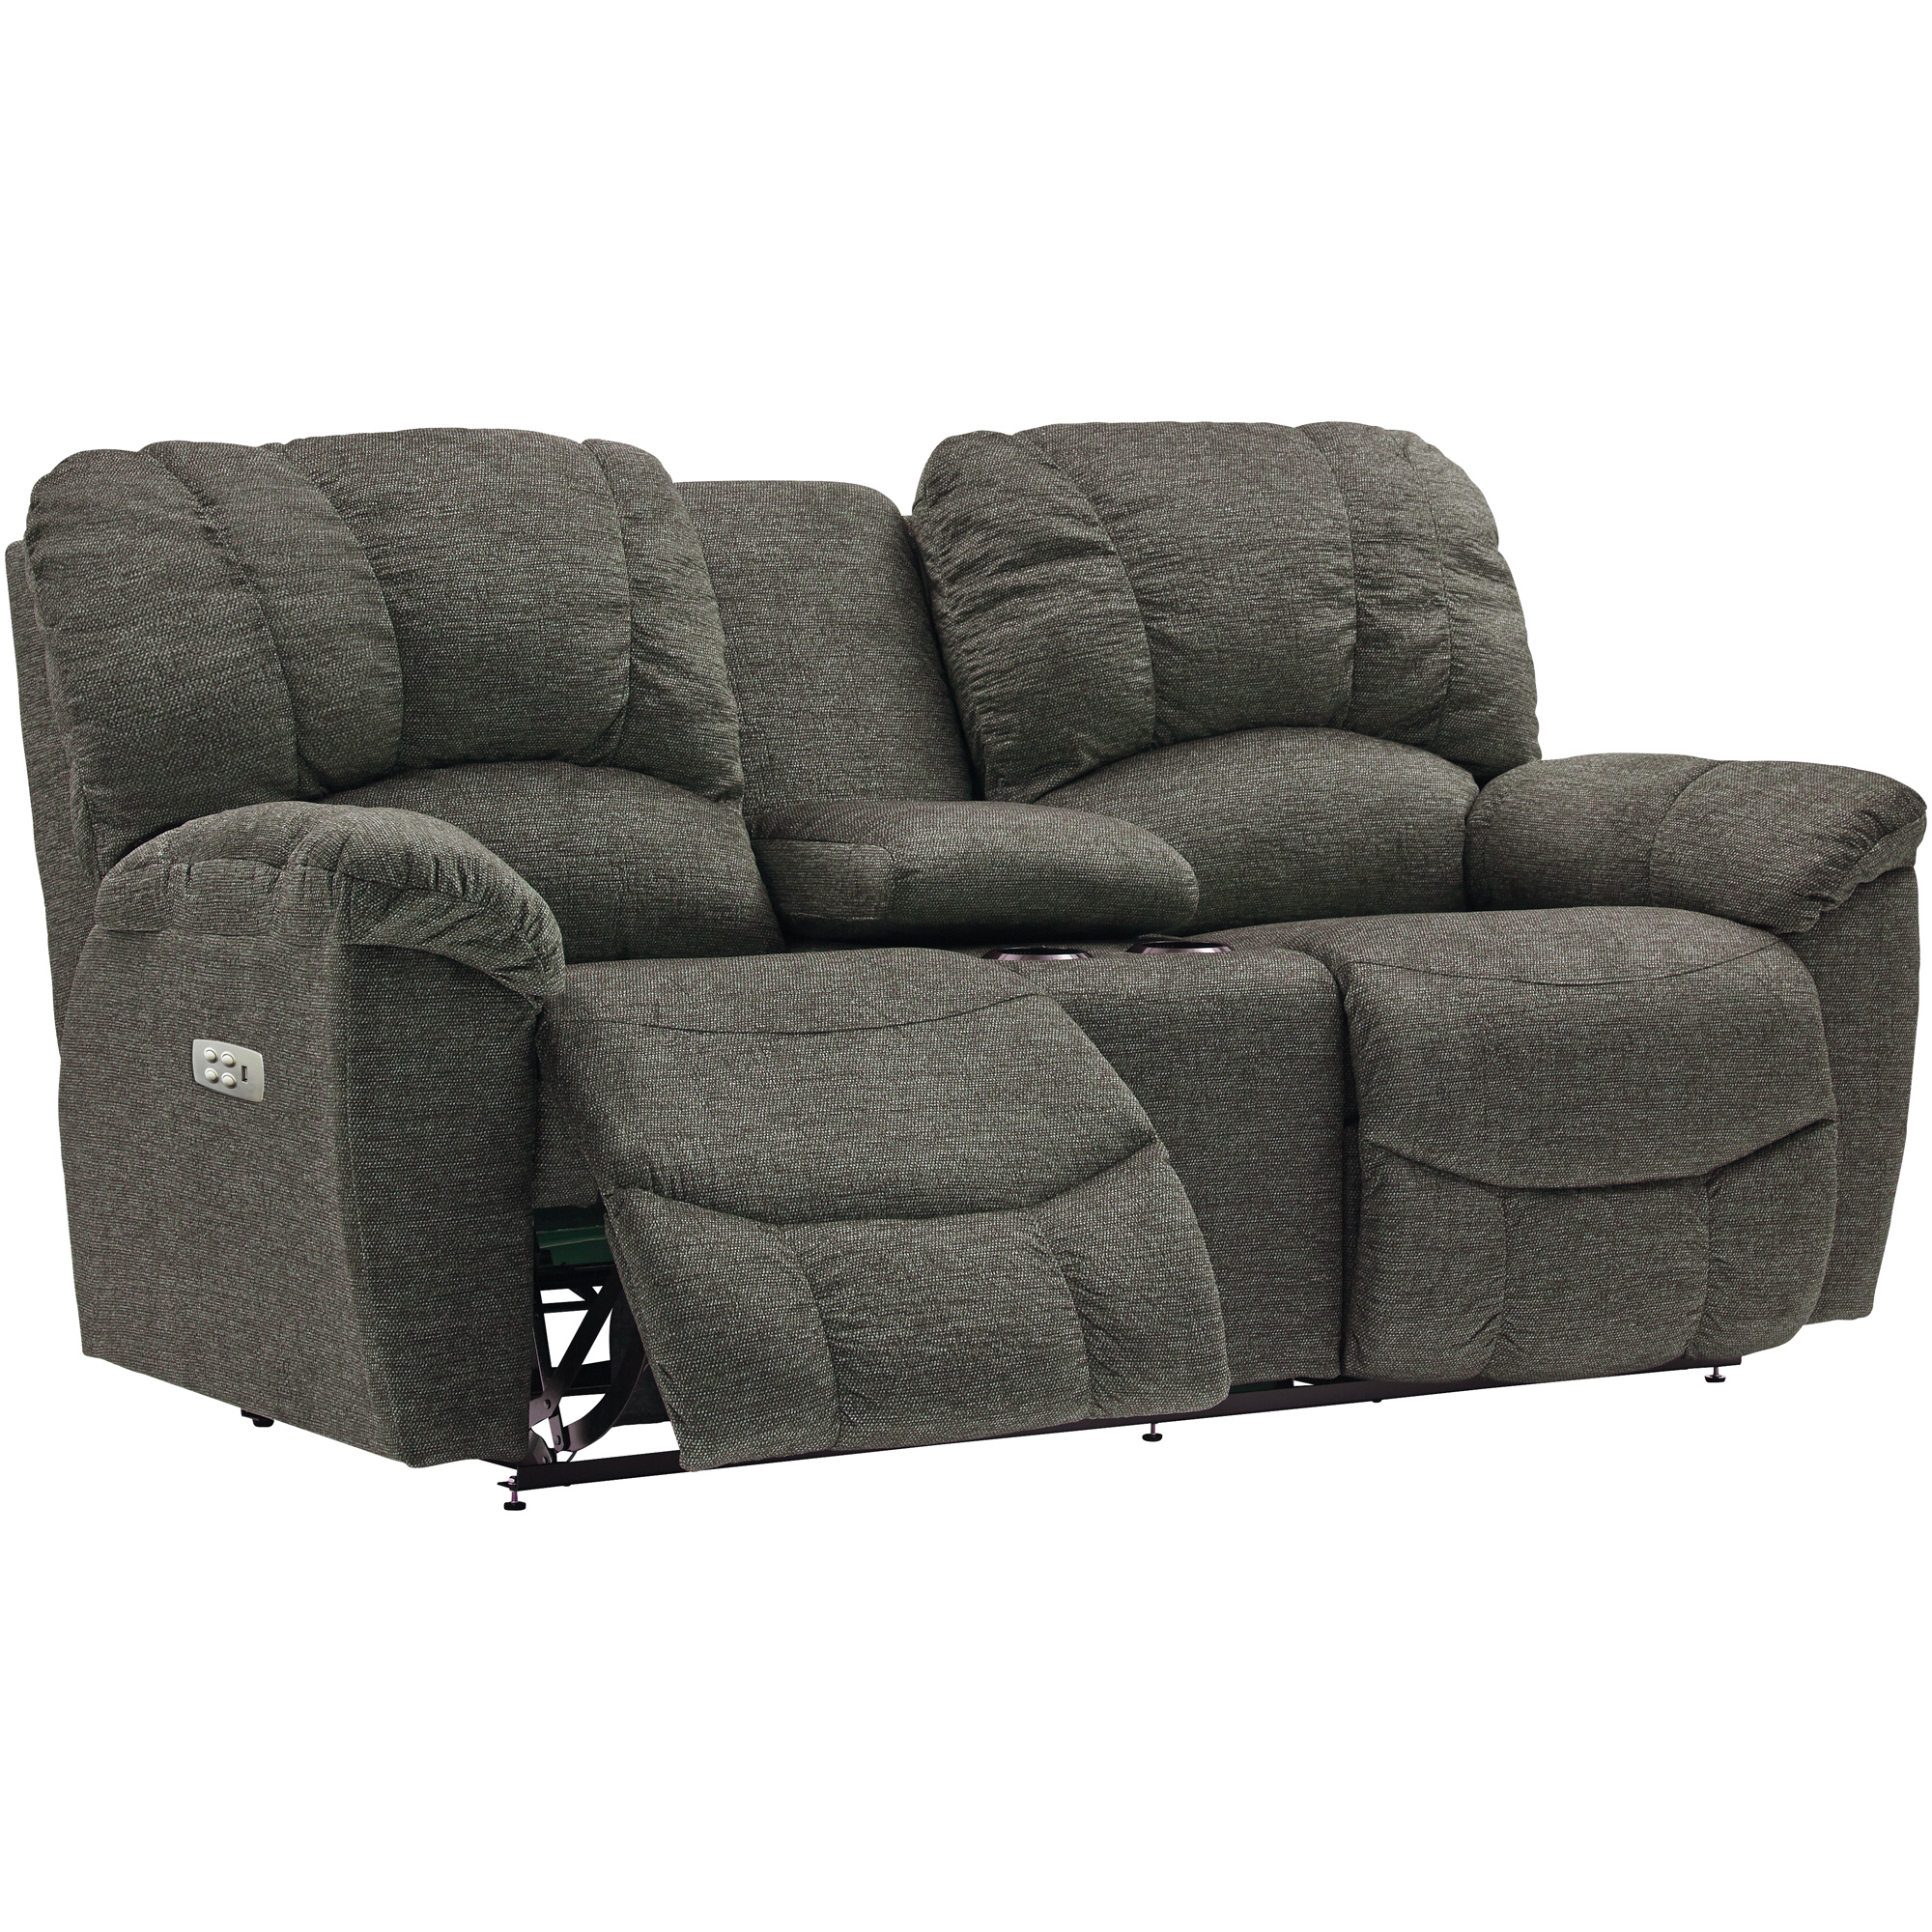 La-Z-Boy | Hayes Sable Power Plus Reclining Console Loveseat Sofa